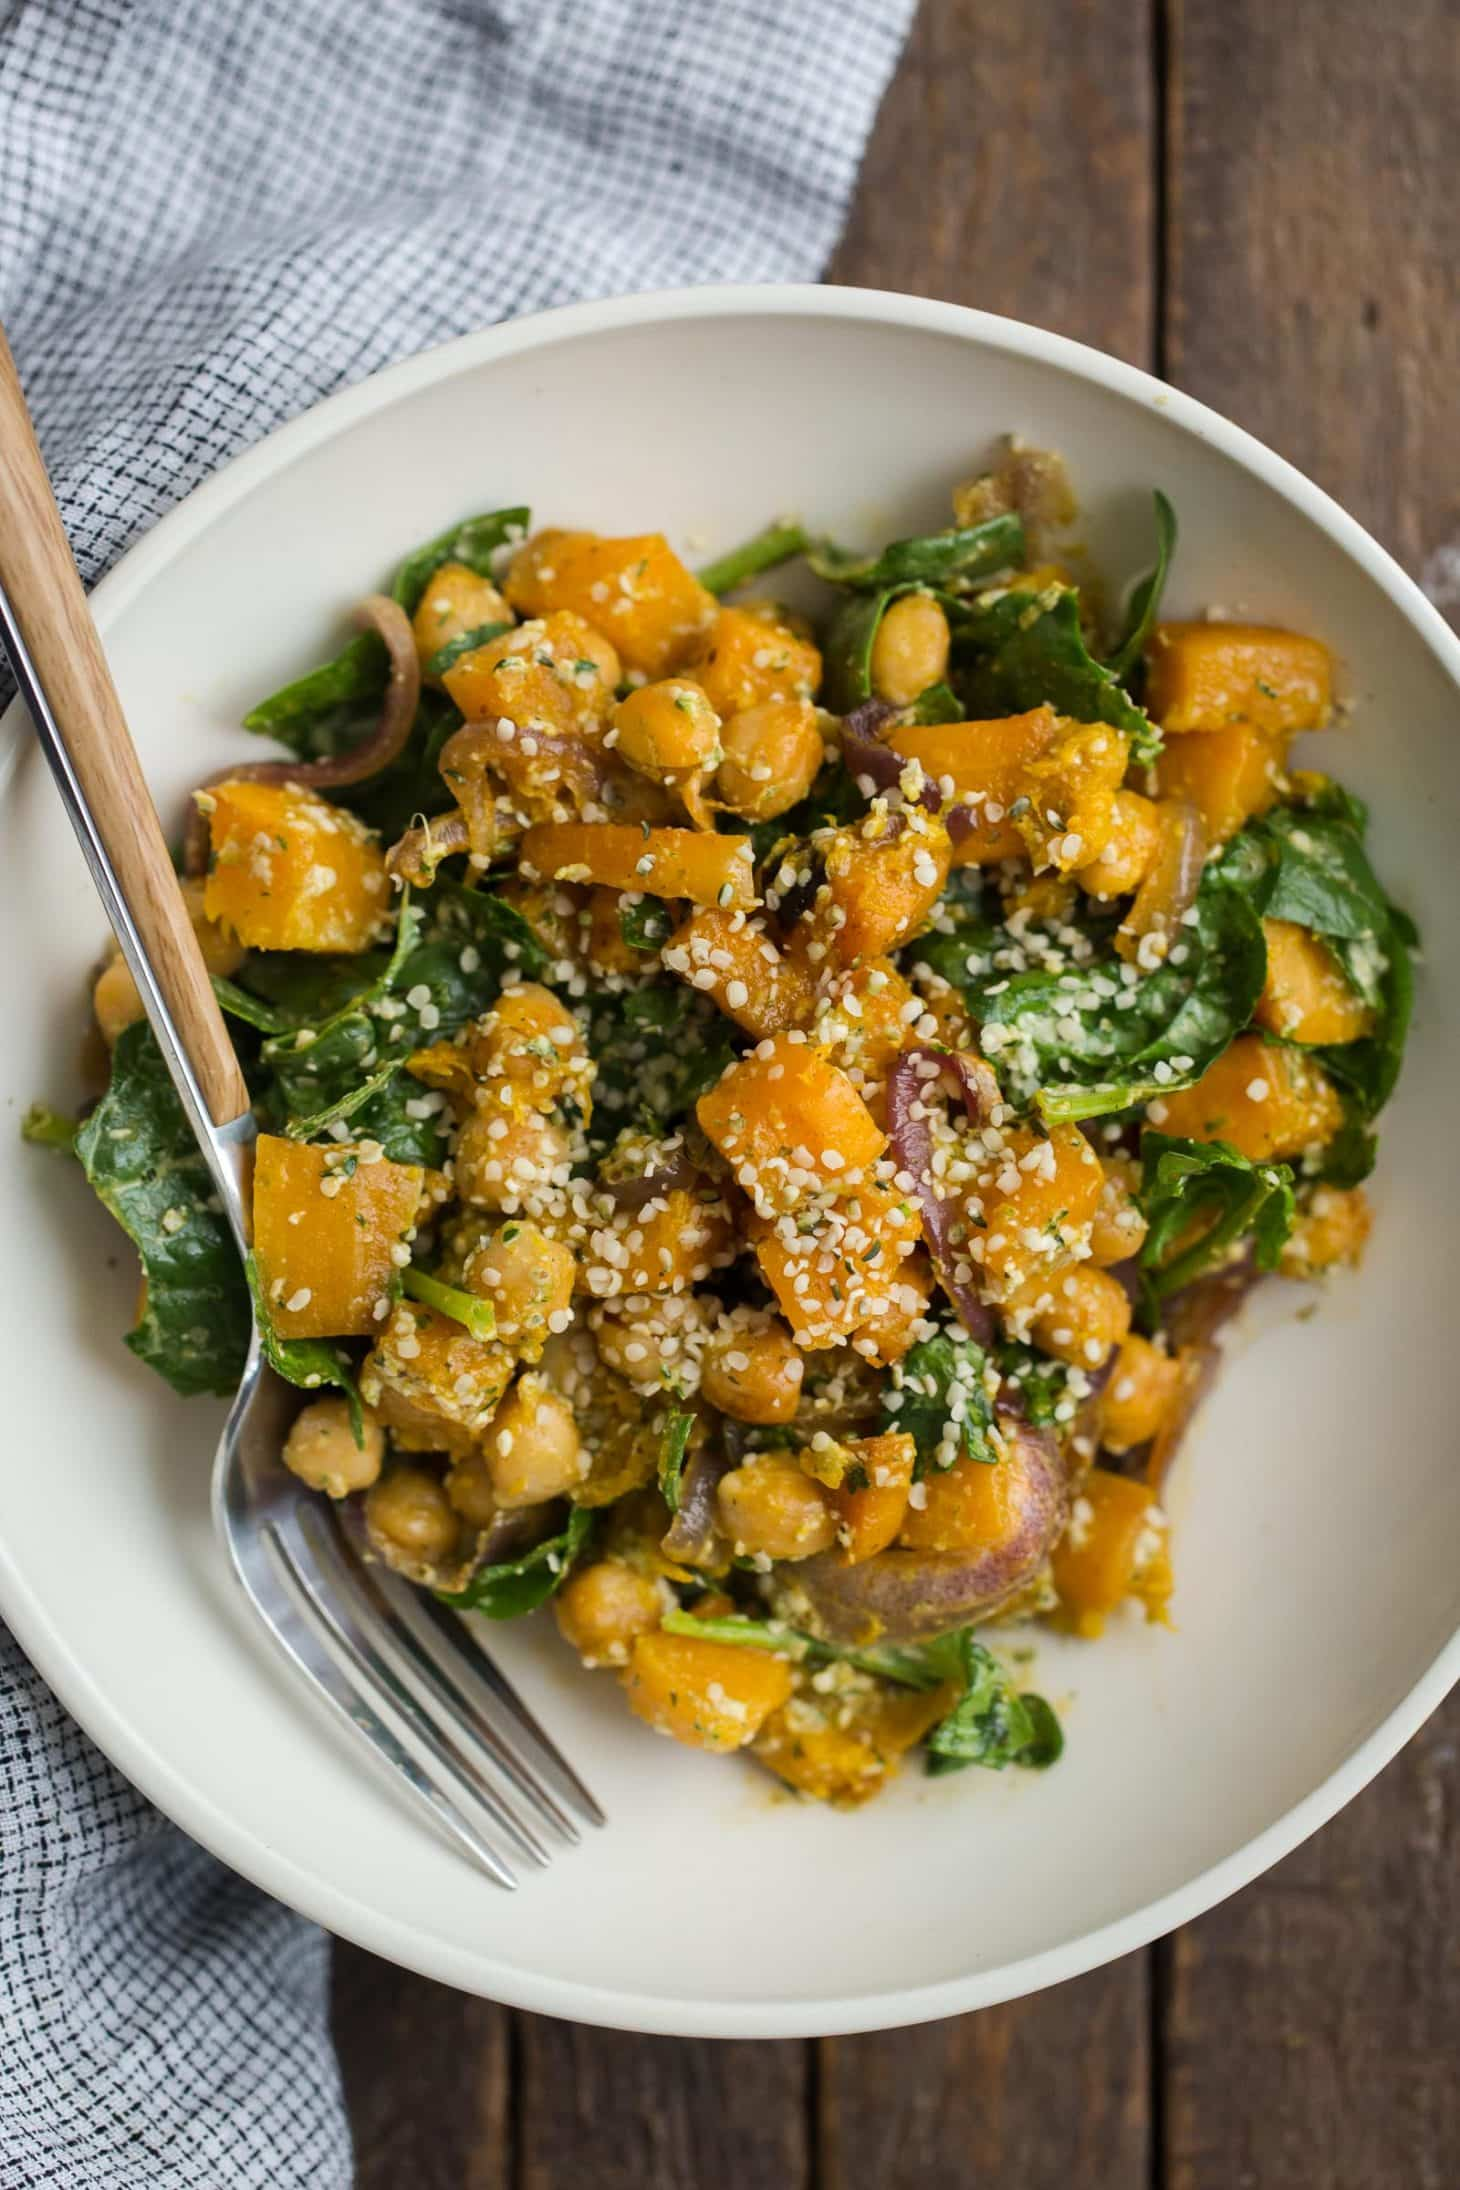 Chipotle Roasted Butternut Squash Salad with Hemp Dressing